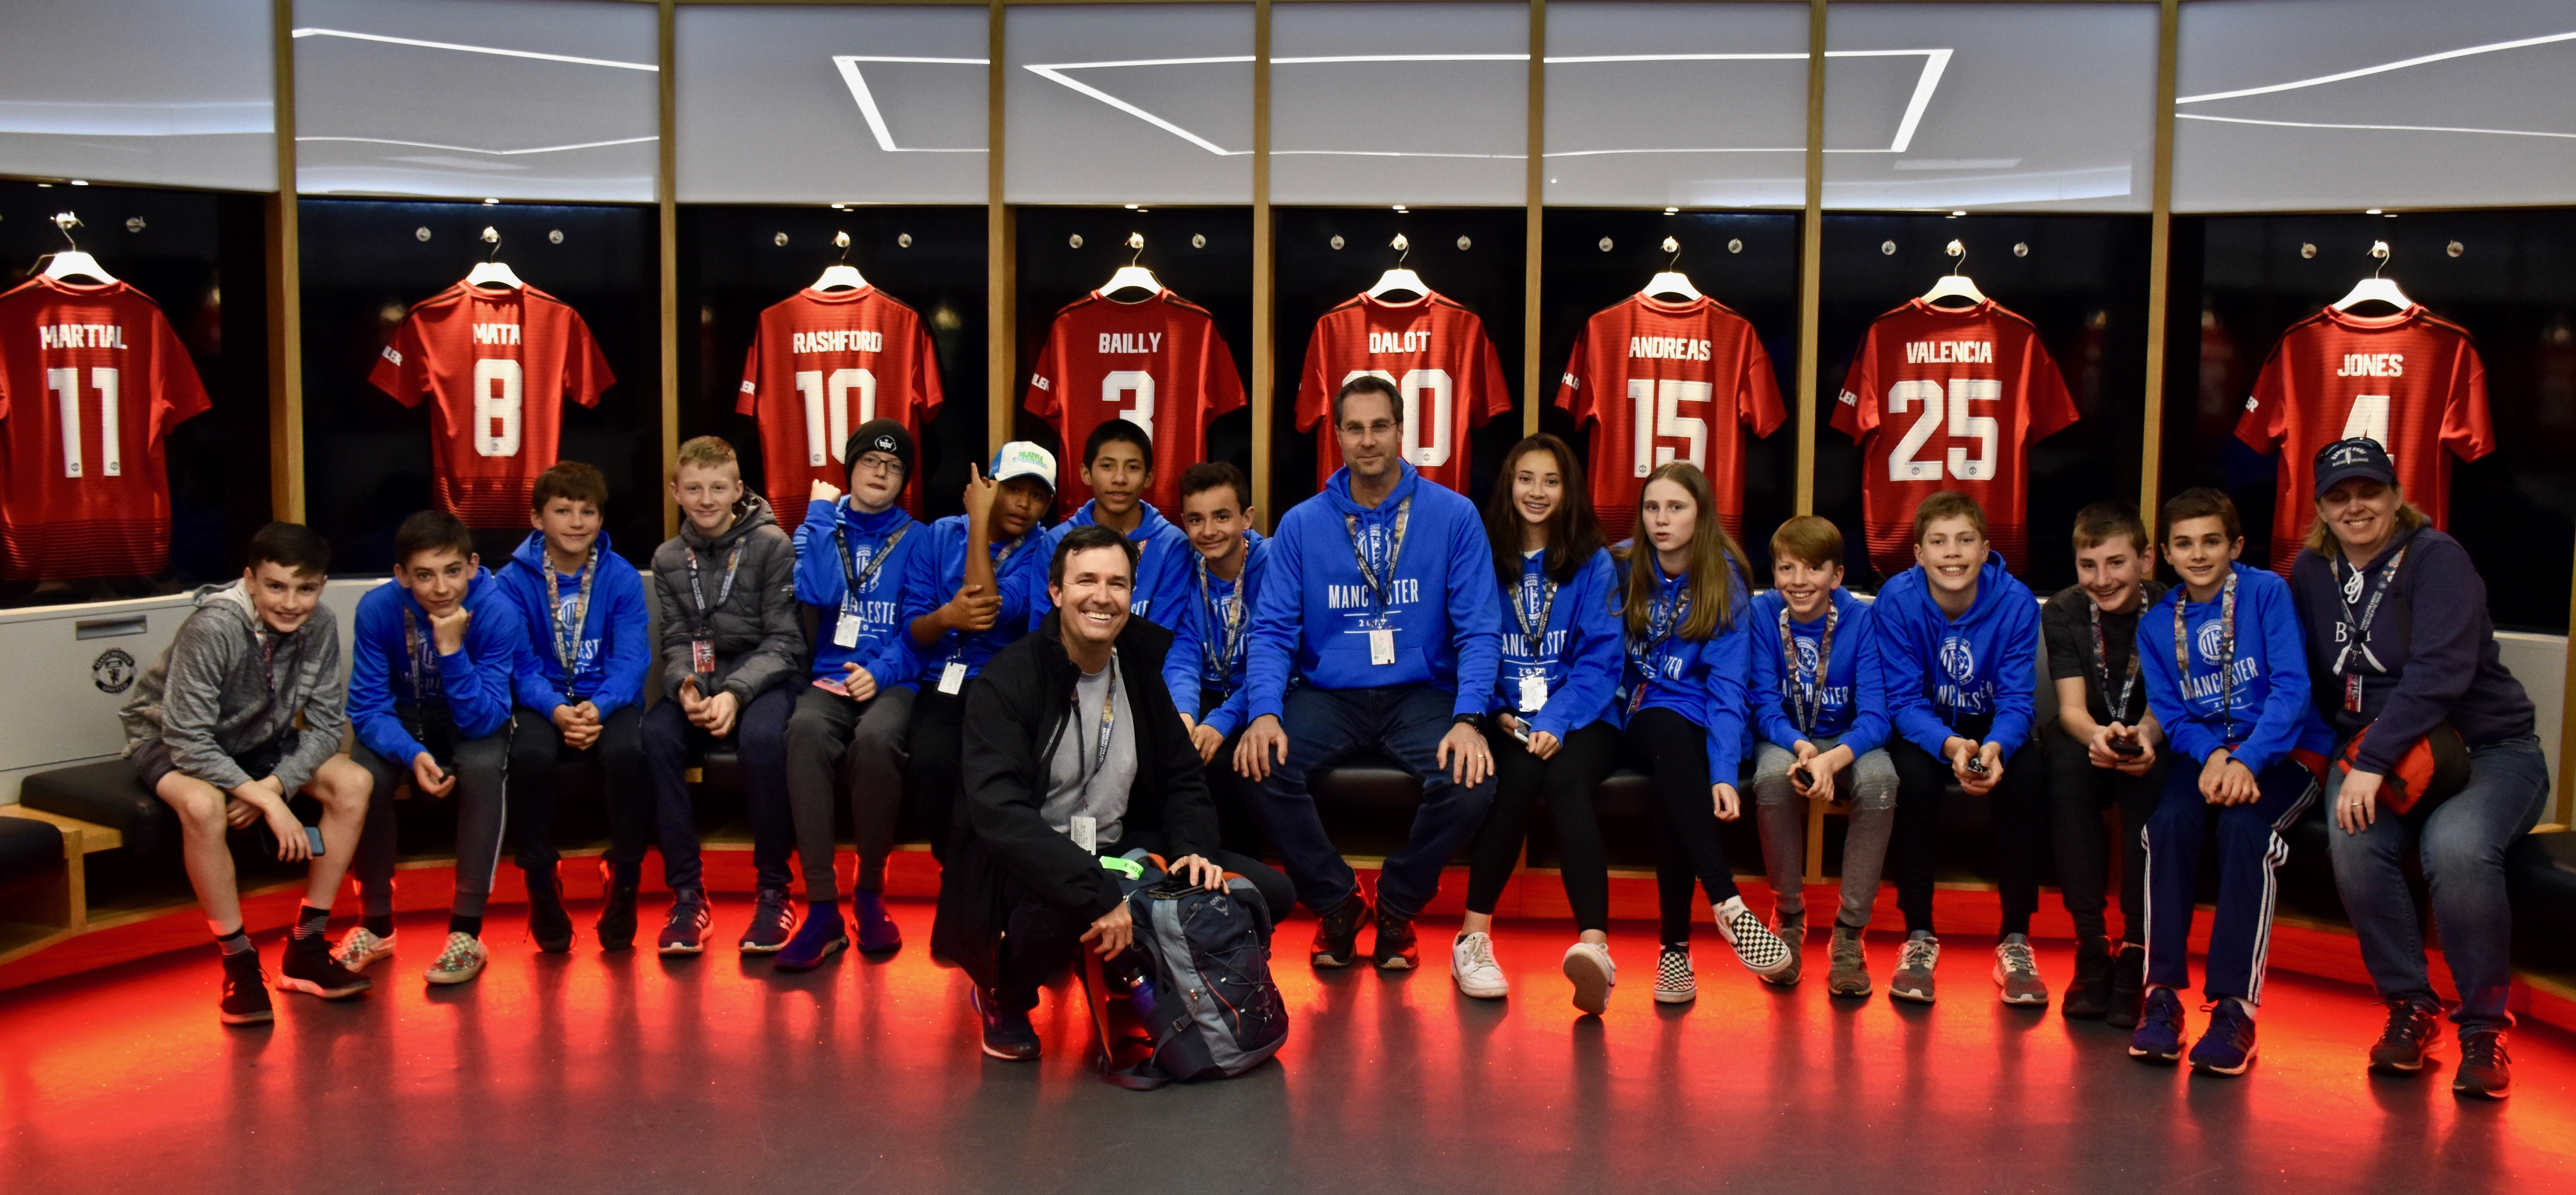 2019 players and chaperones visit the Manchester United locker room